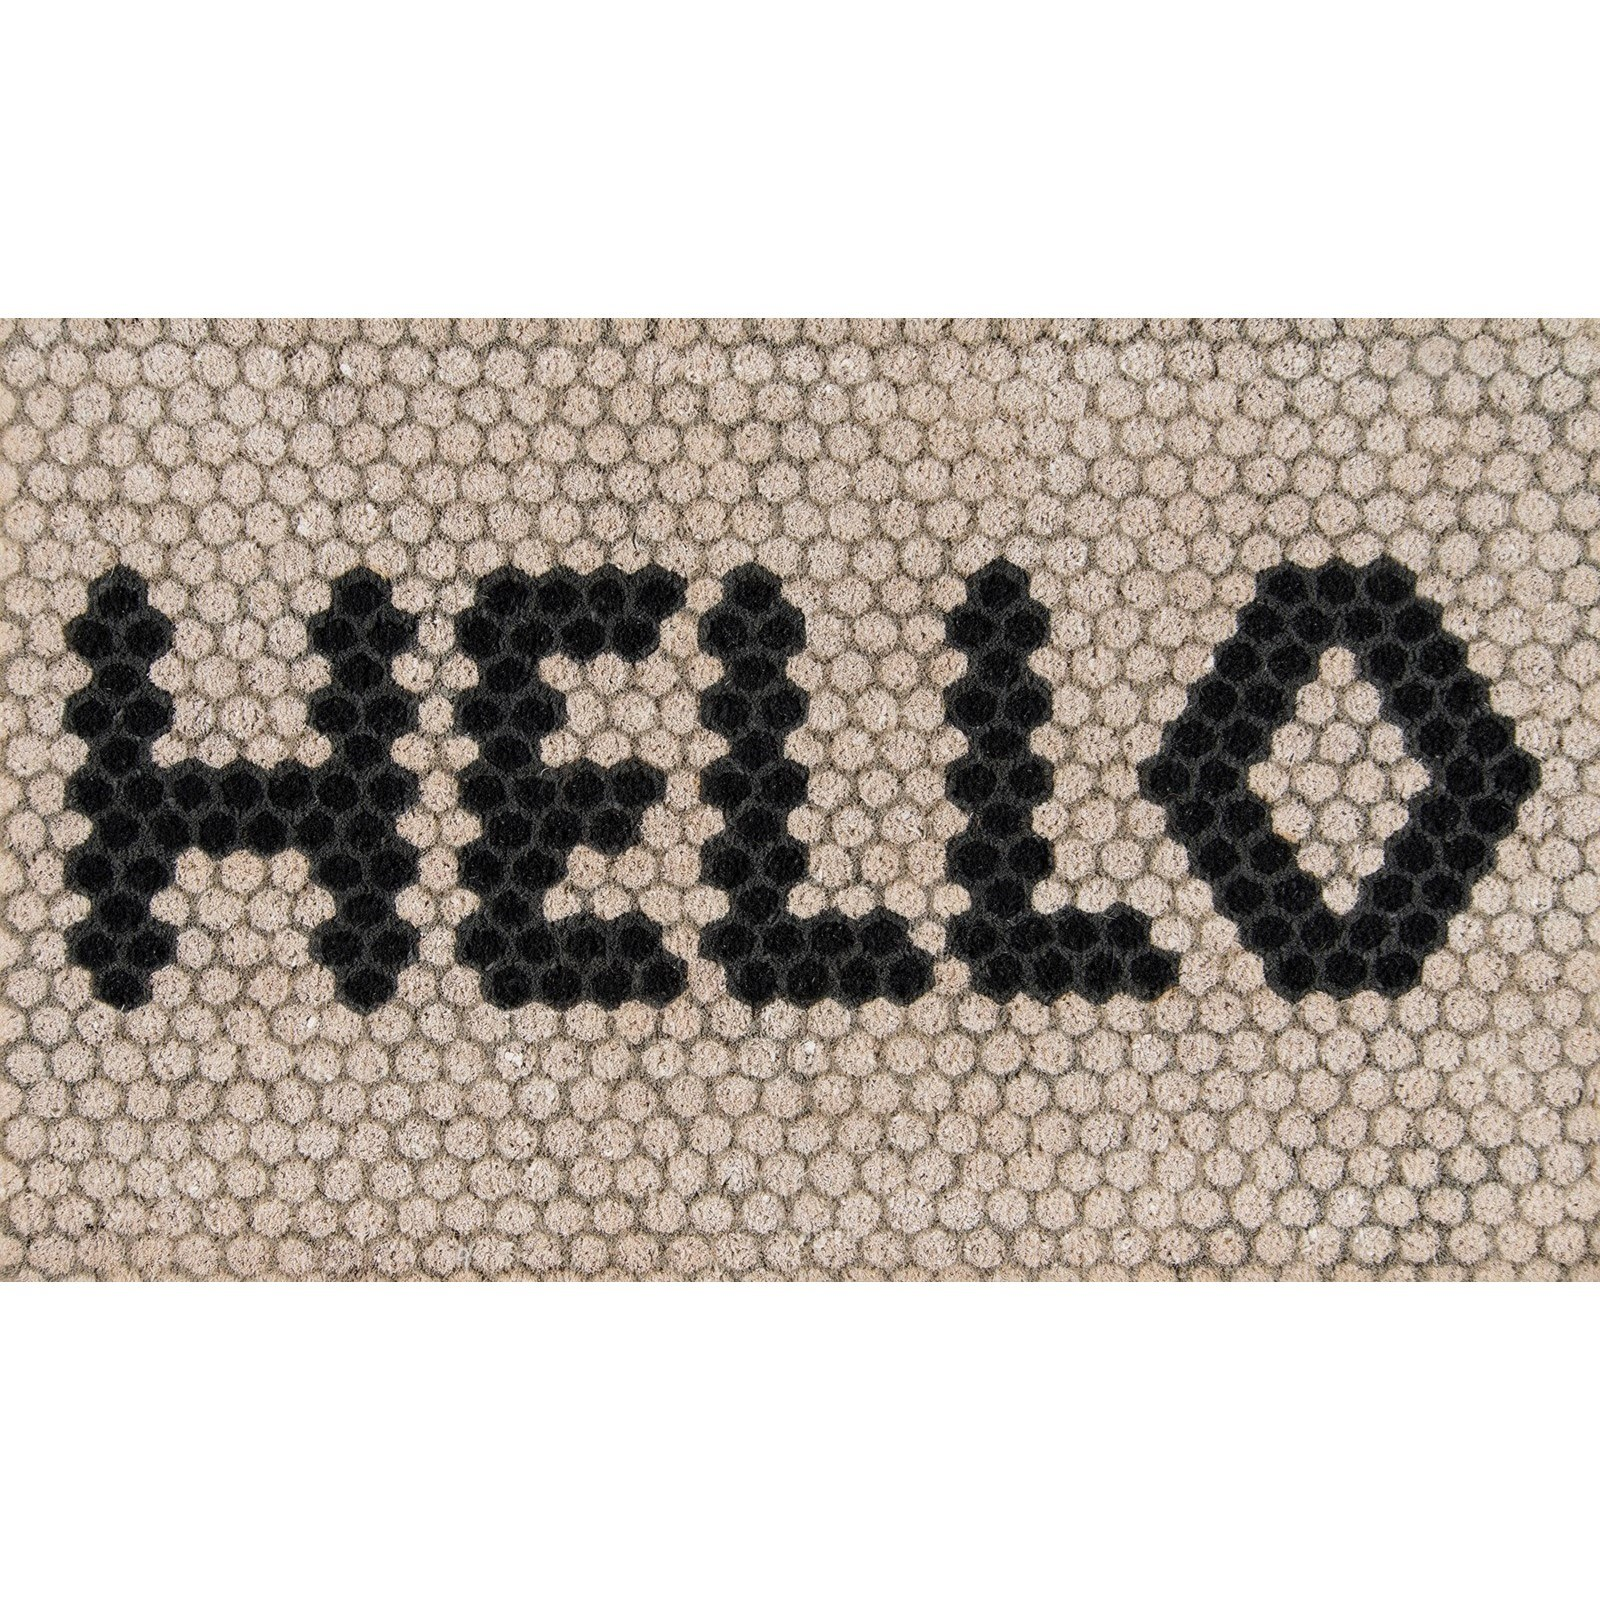 "Hello Hex Tile 1'6"" x 2'6"" Rug"